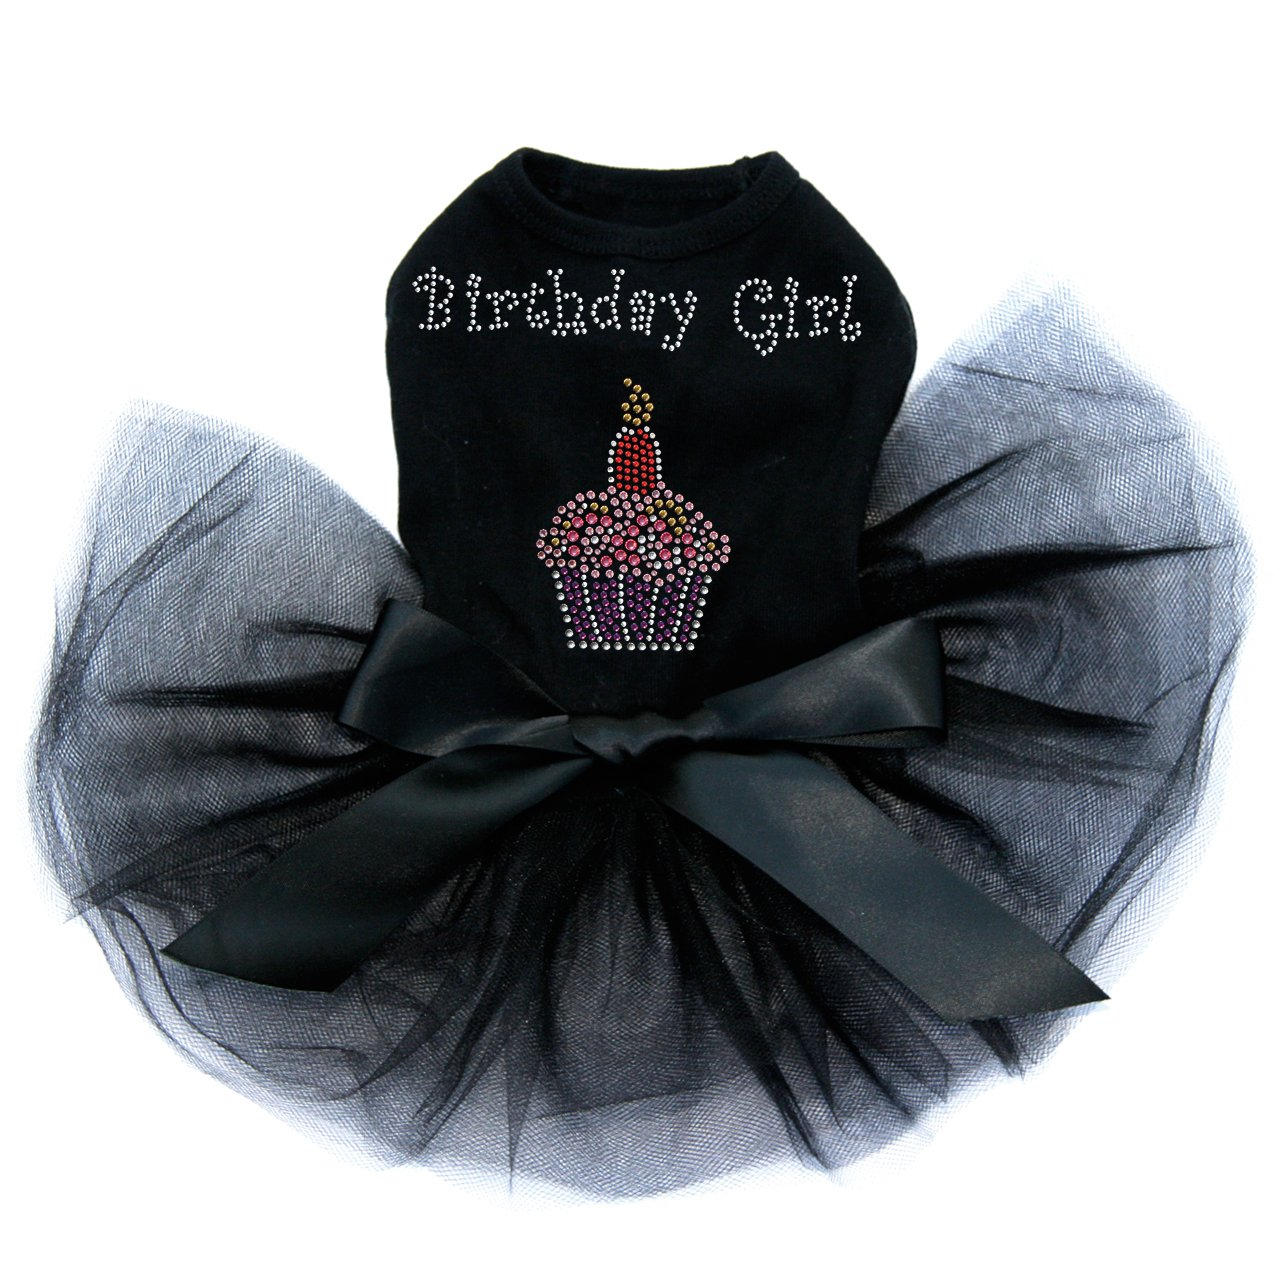 Birthday Girl - Dog Tutu Dress, L Black by Dog in the Closet